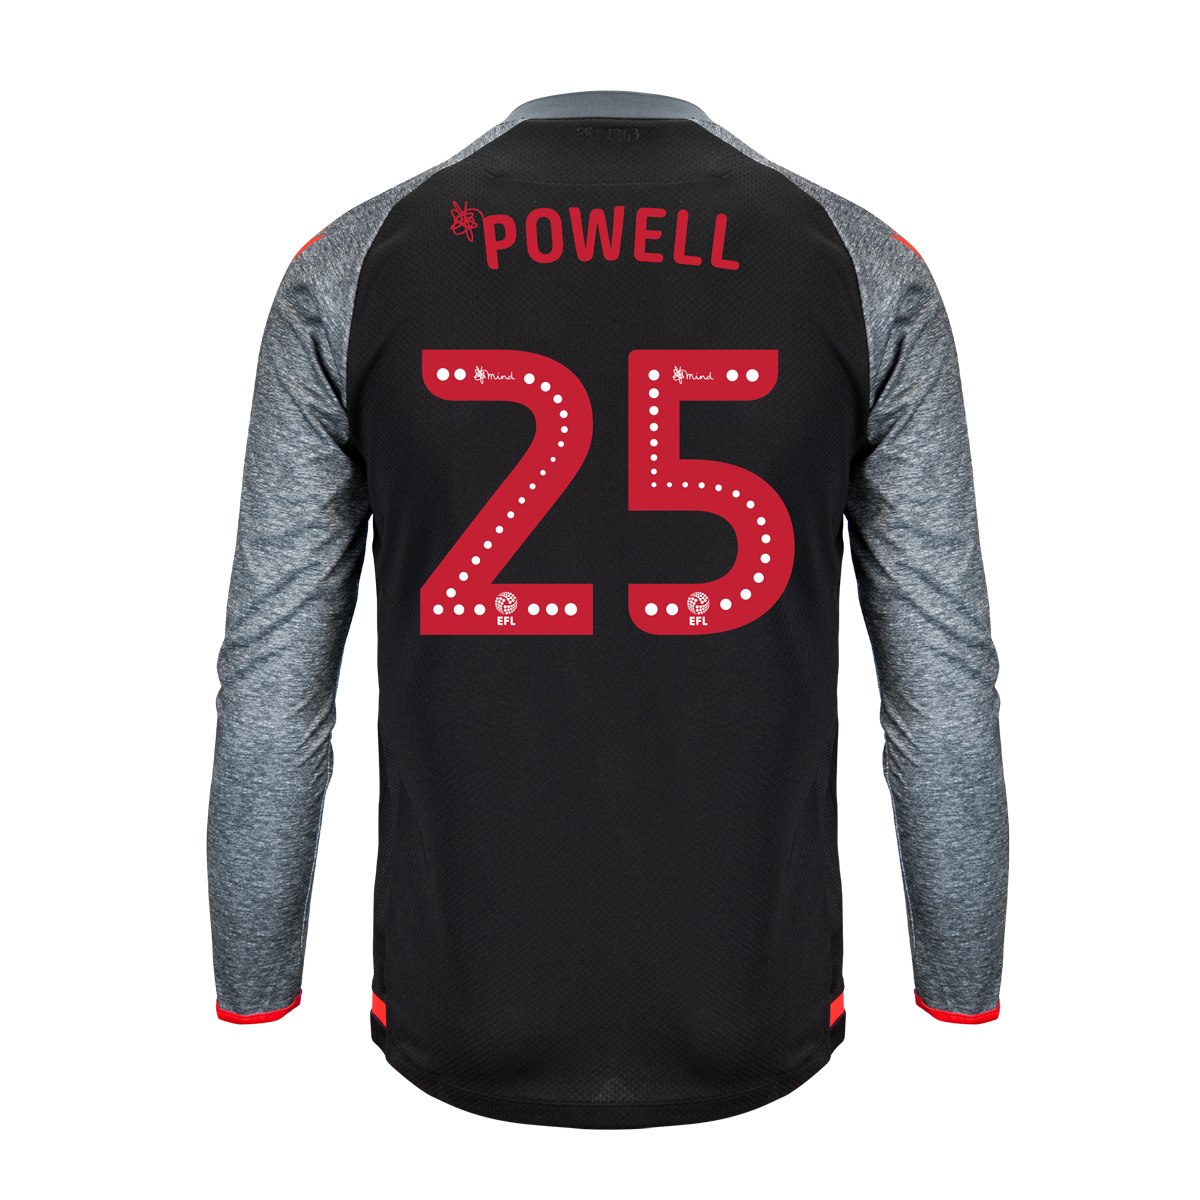 2019/20 Adult Away LS Shirt - Powell